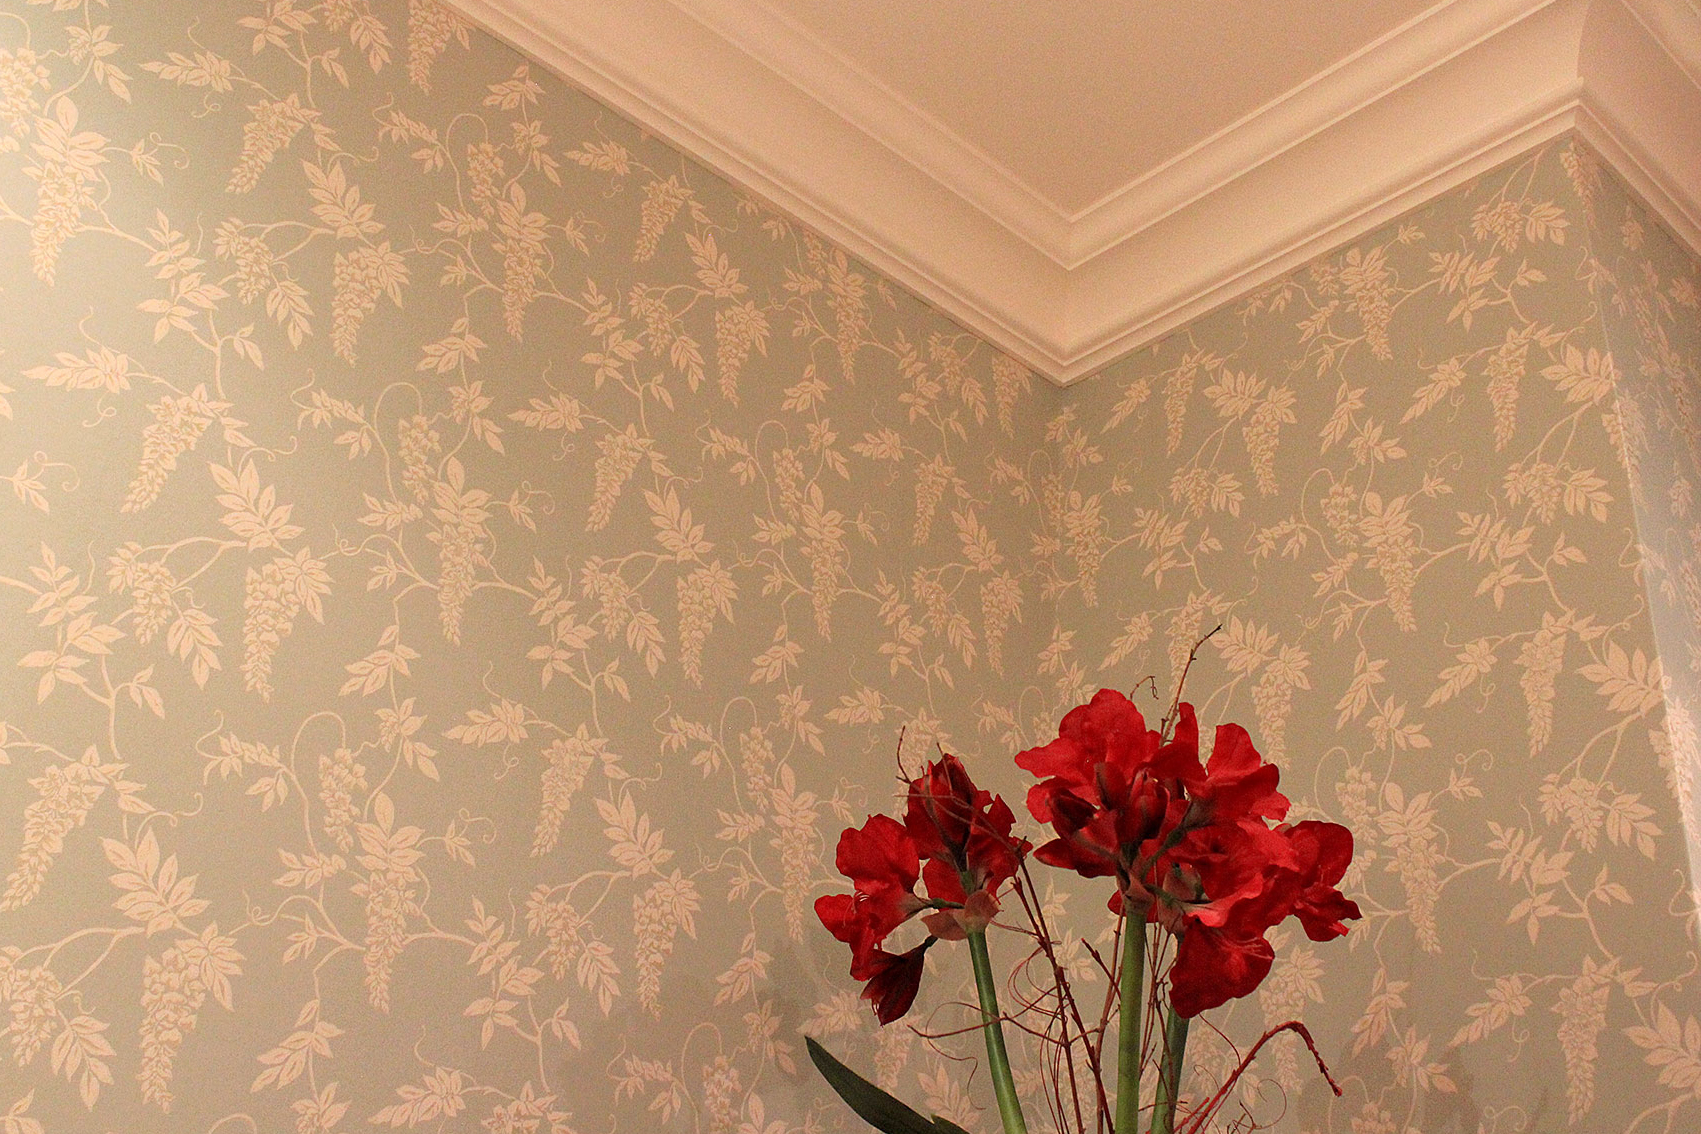 Wallpapering - hollandsfinishes.co.uk